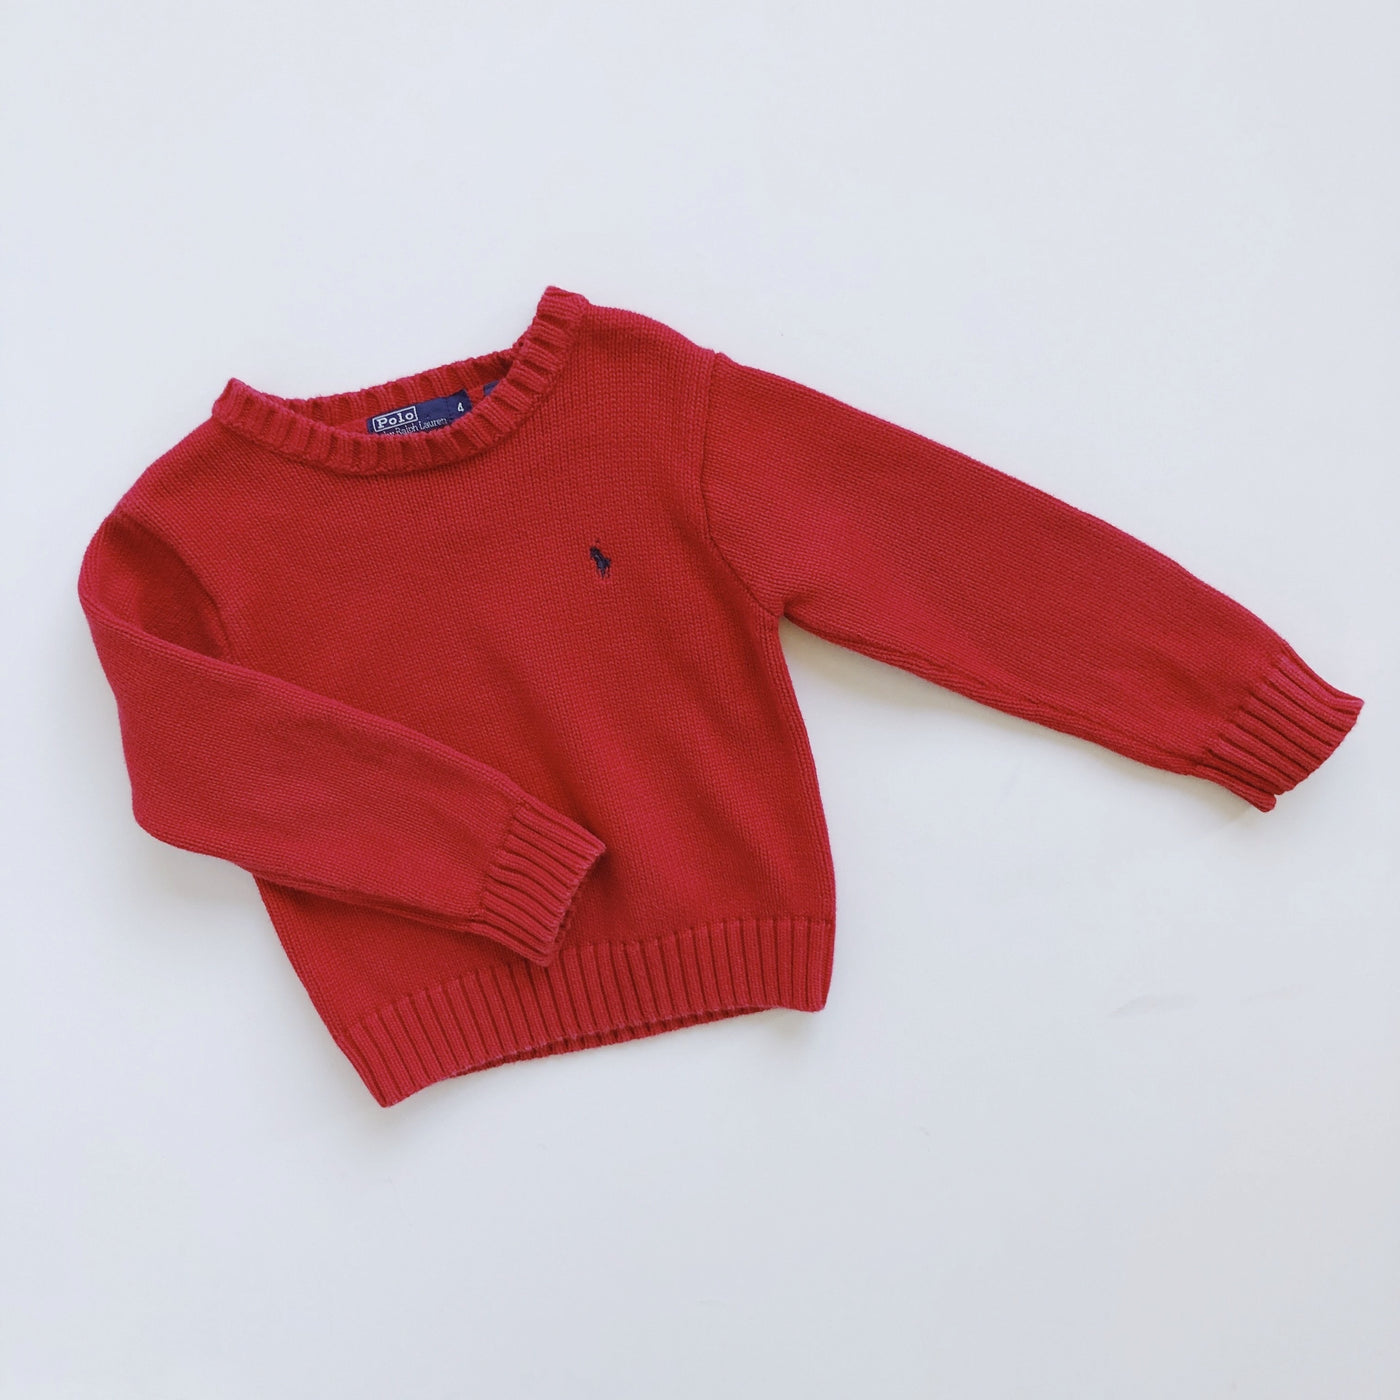 Ralph Lauren Red Crew Neck Sweater / Size 4T